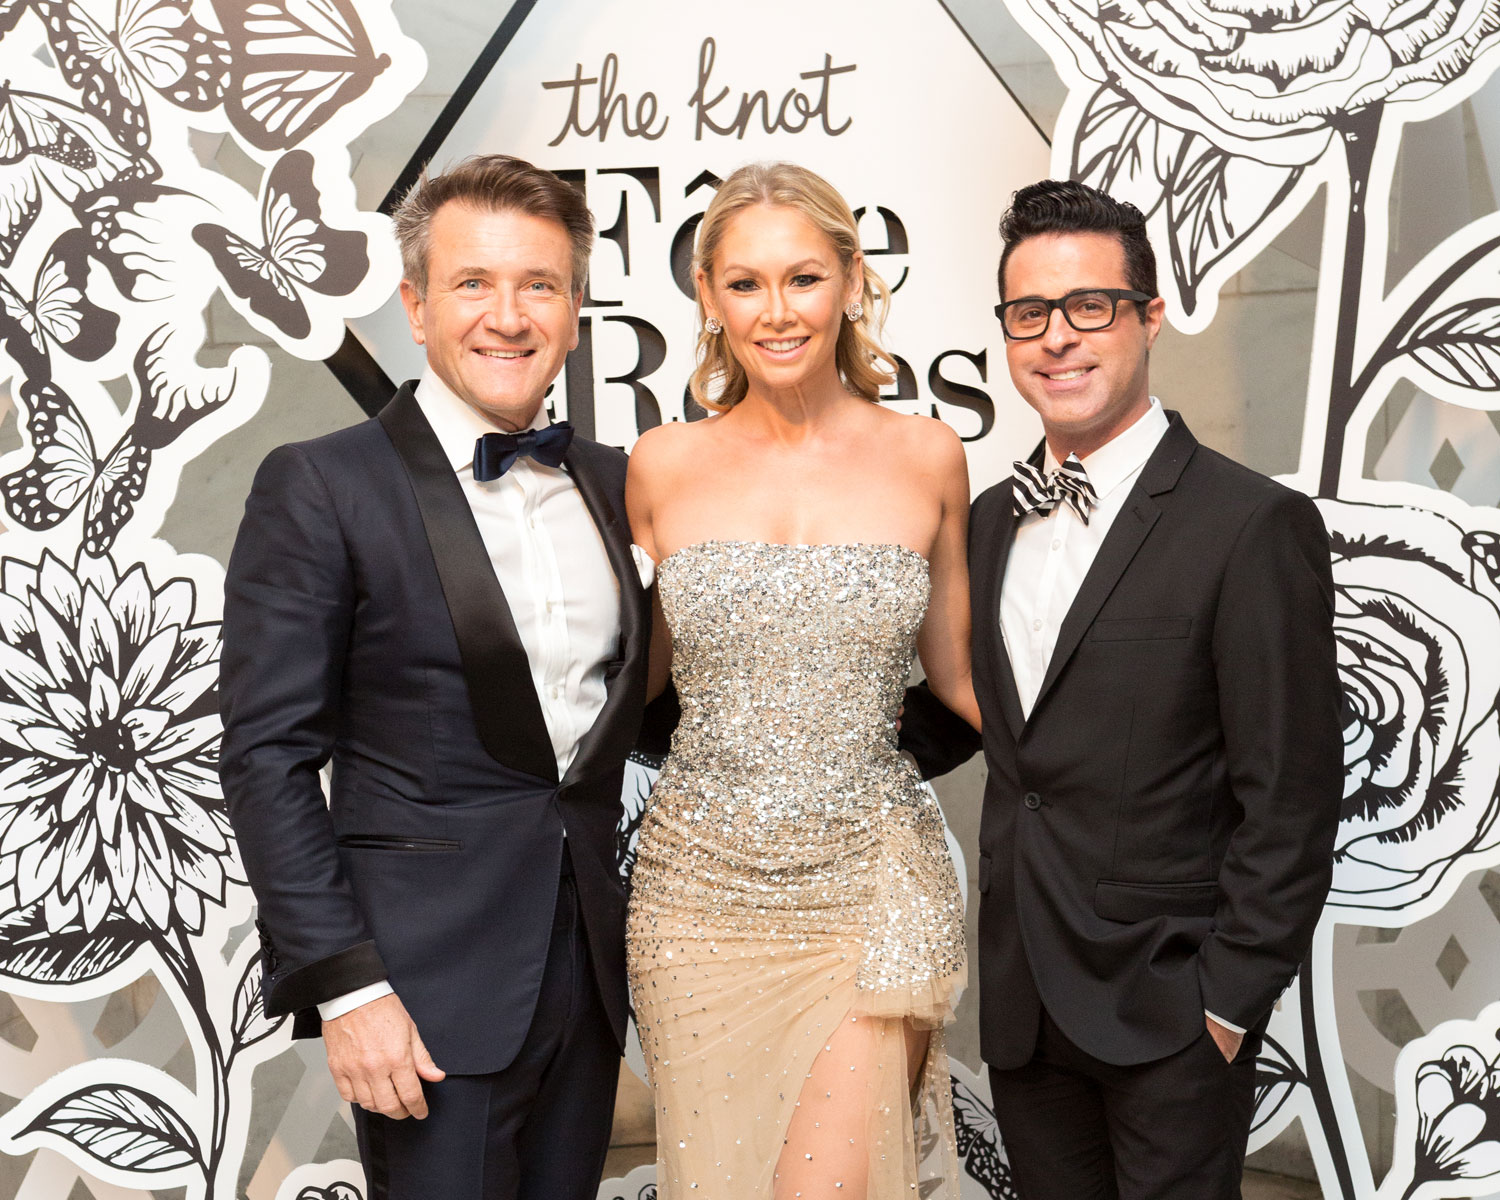 Robert Kym Johnson